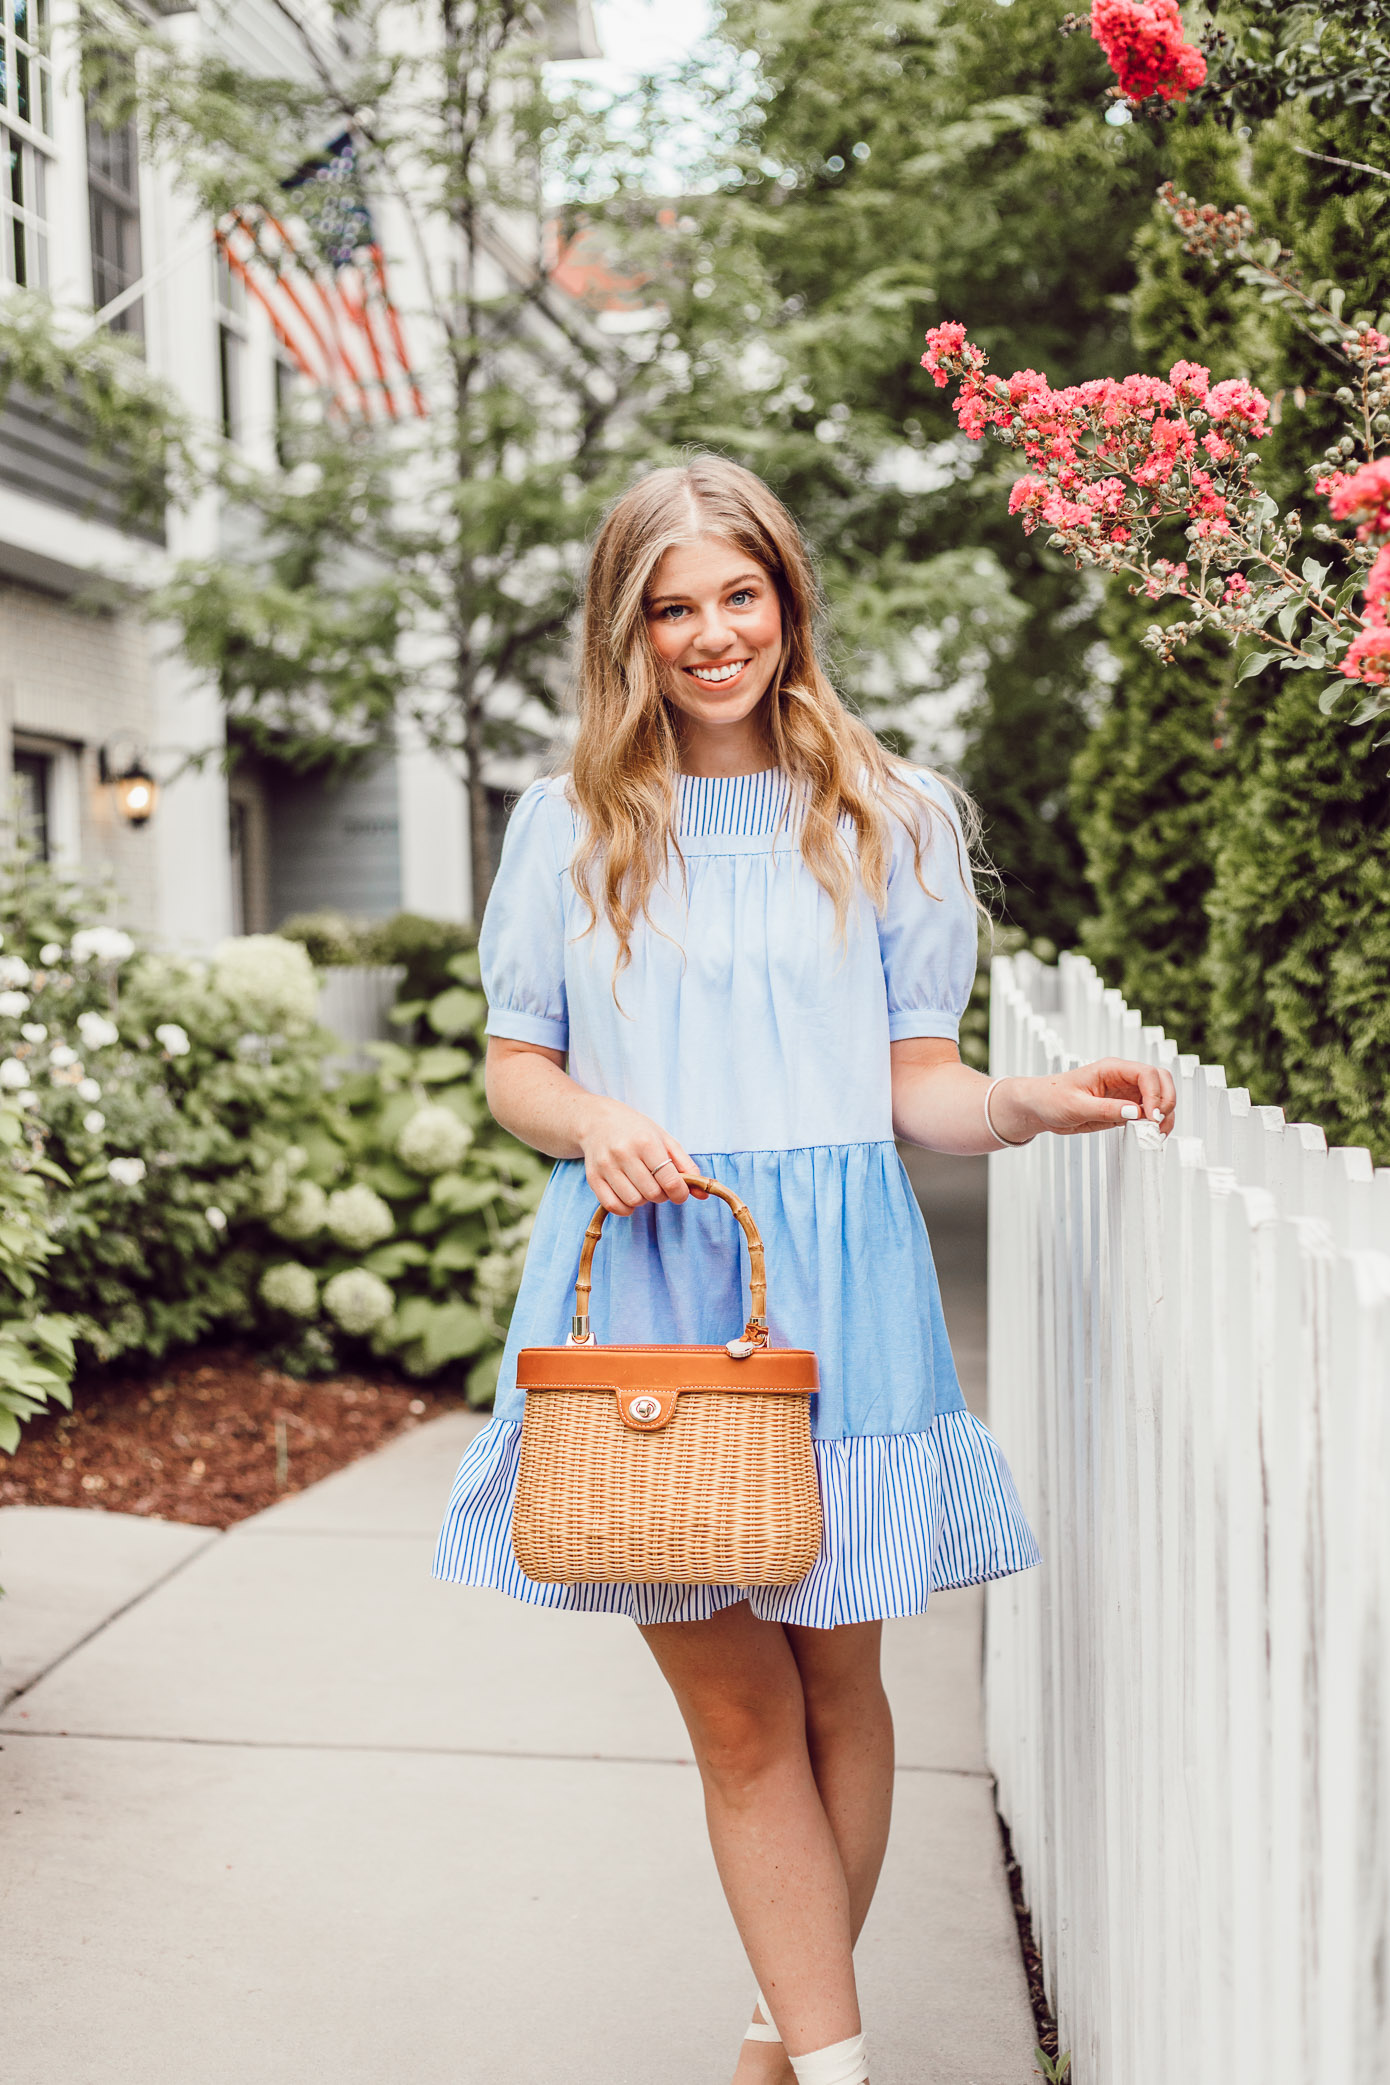 English Factory Summer Dress in Charlotte, NC // Blue and White Dress for Summer, Structured Basket Bag   Louella Reese